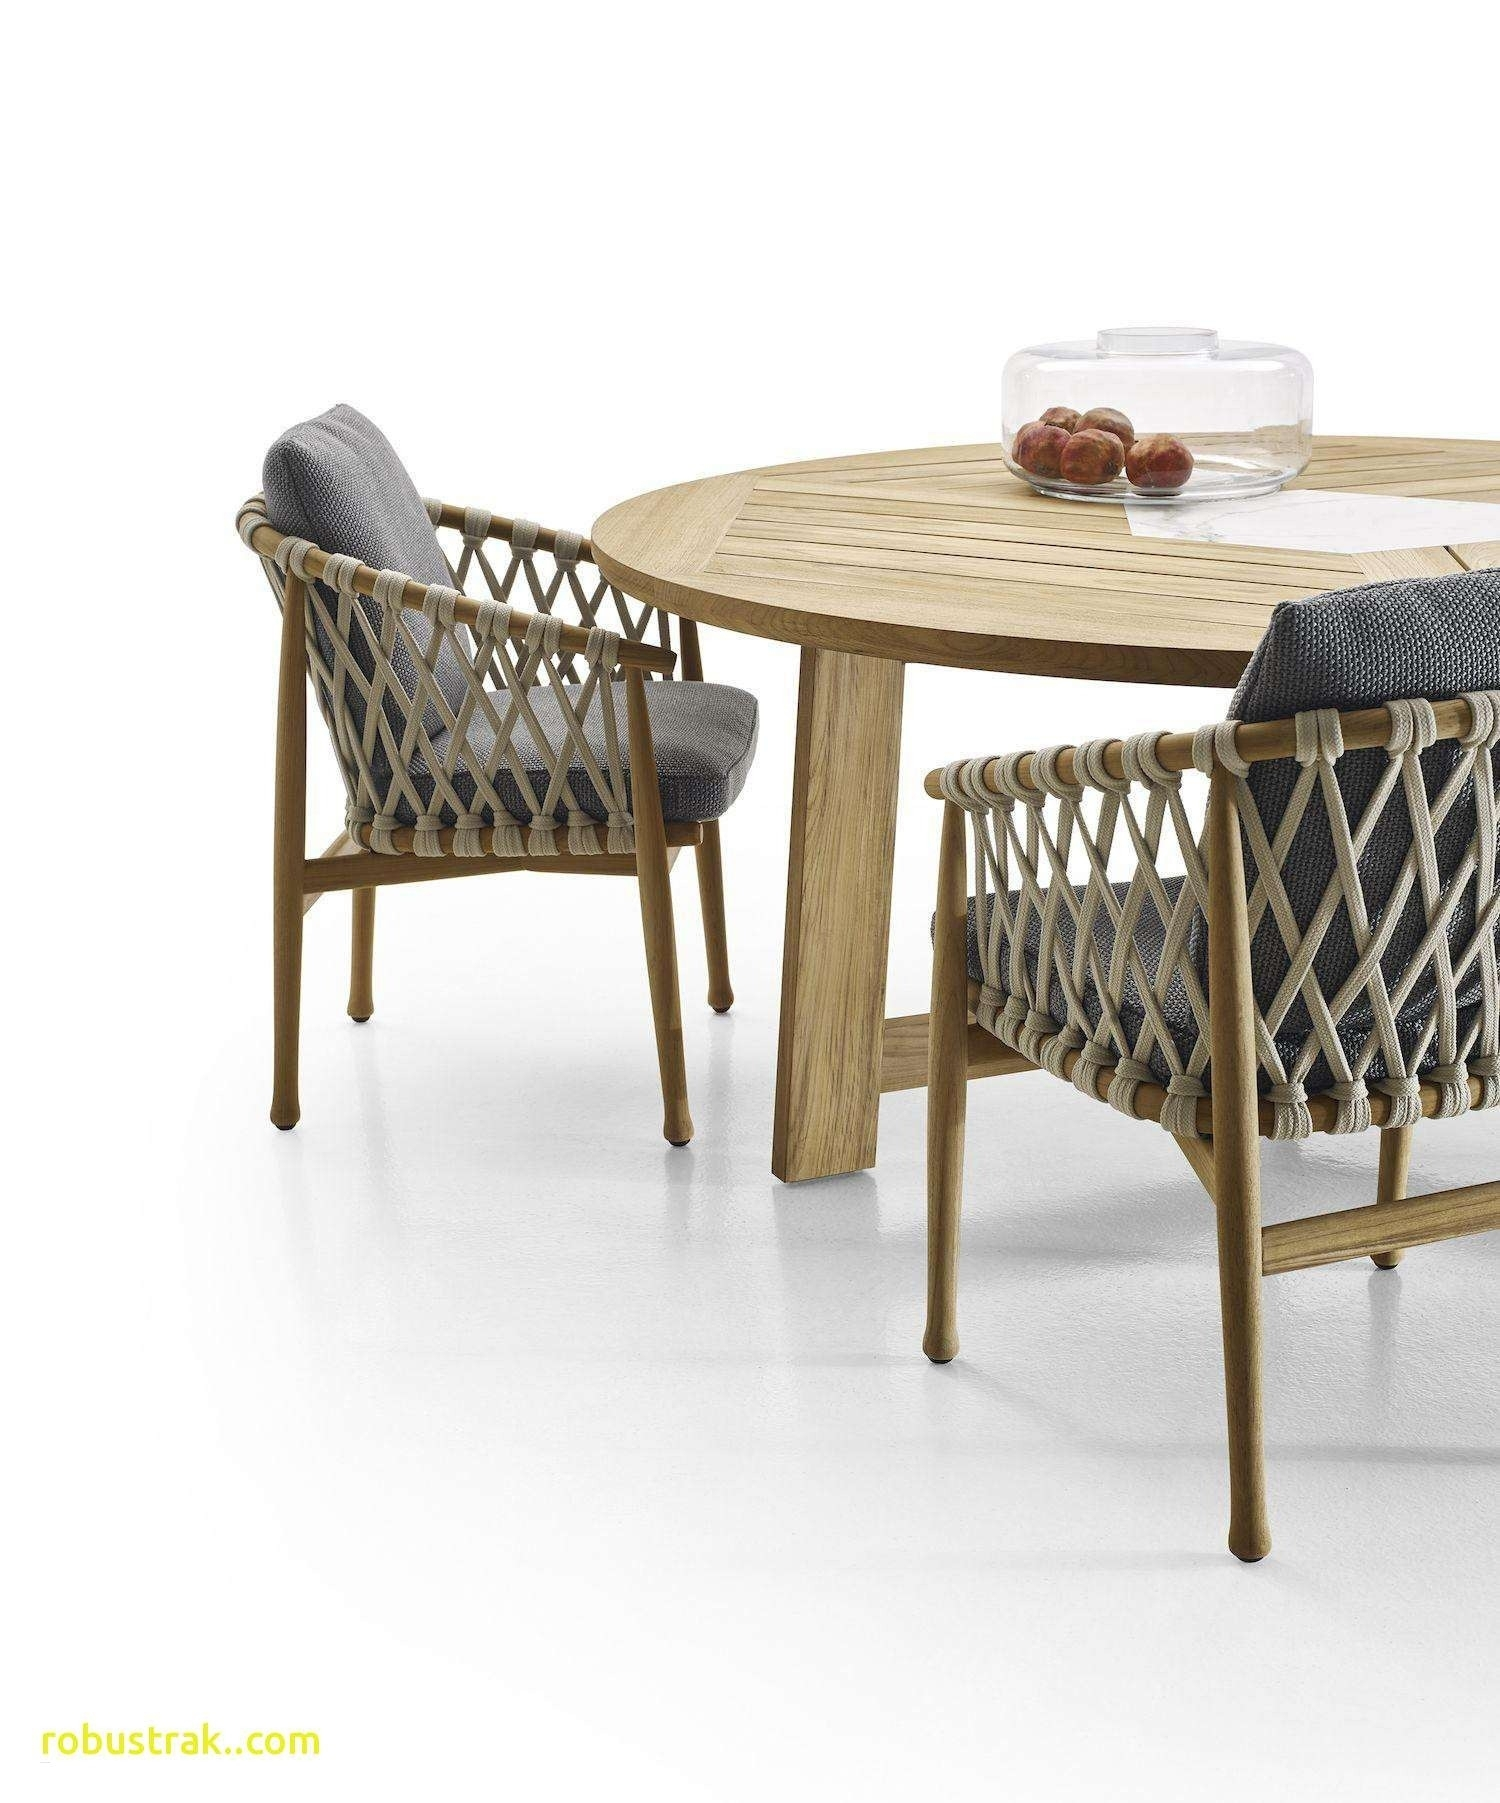 The 21 New Pedestals For Dining Tables – Welovedandelion Intended For Current Caira Extension Pedestal Dining Tables (Image 19 of 20)